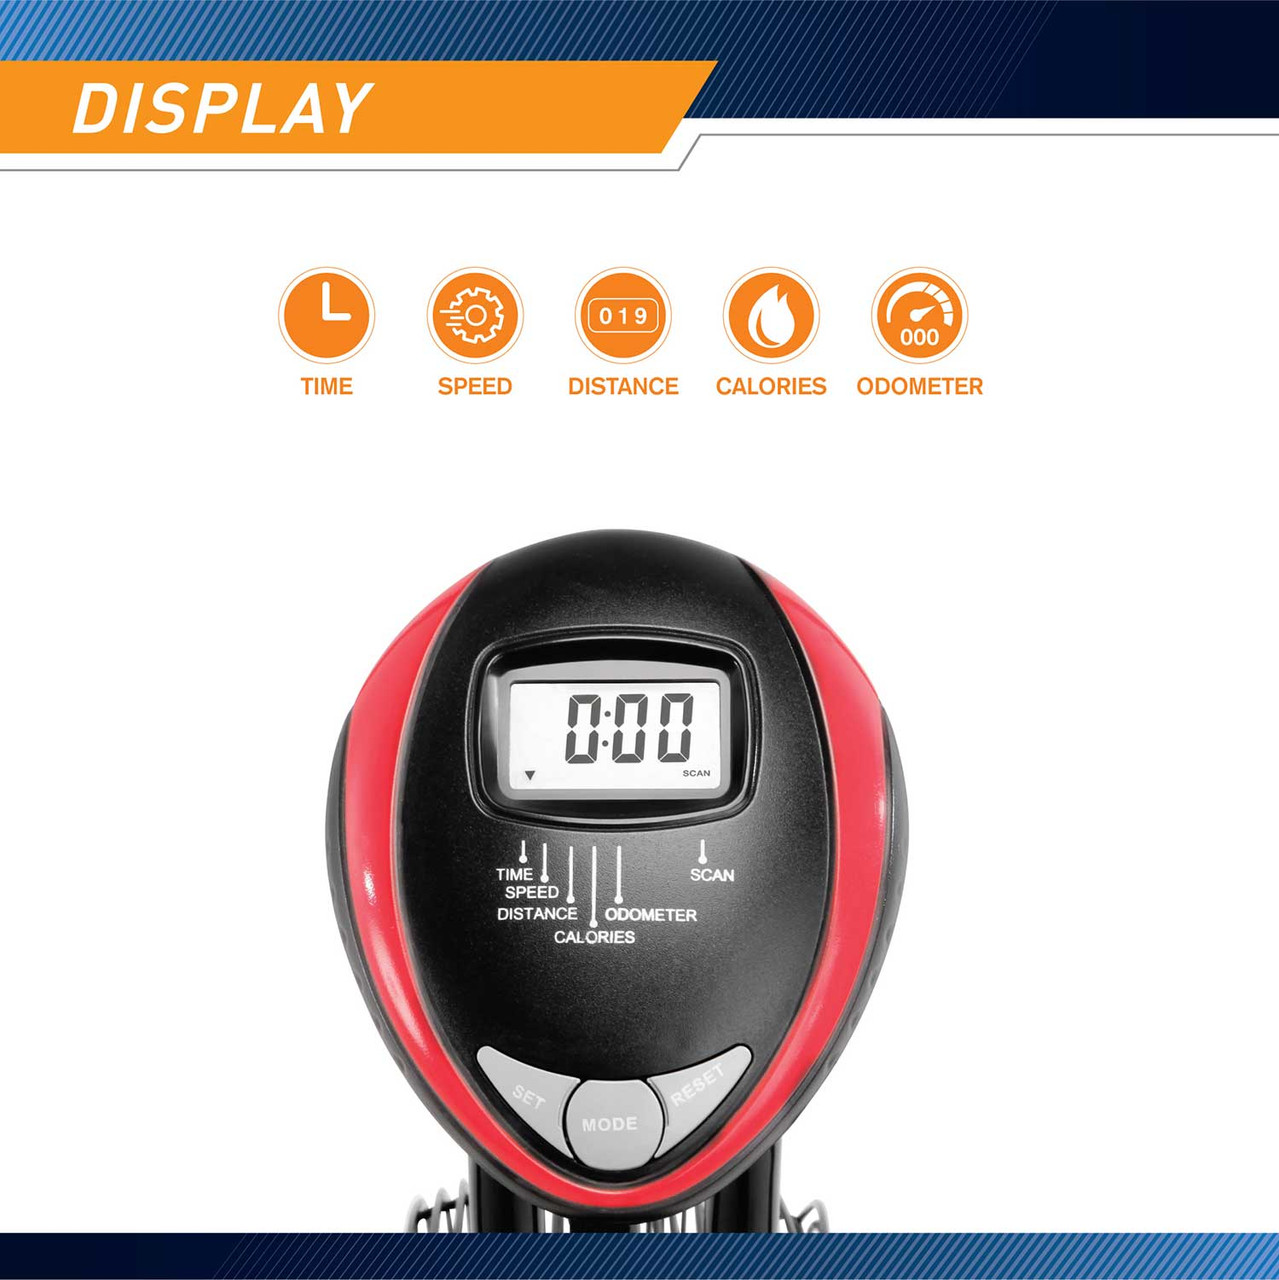 The Marcy Fan Bike NS-1000 has a digital display to keep track of your progress